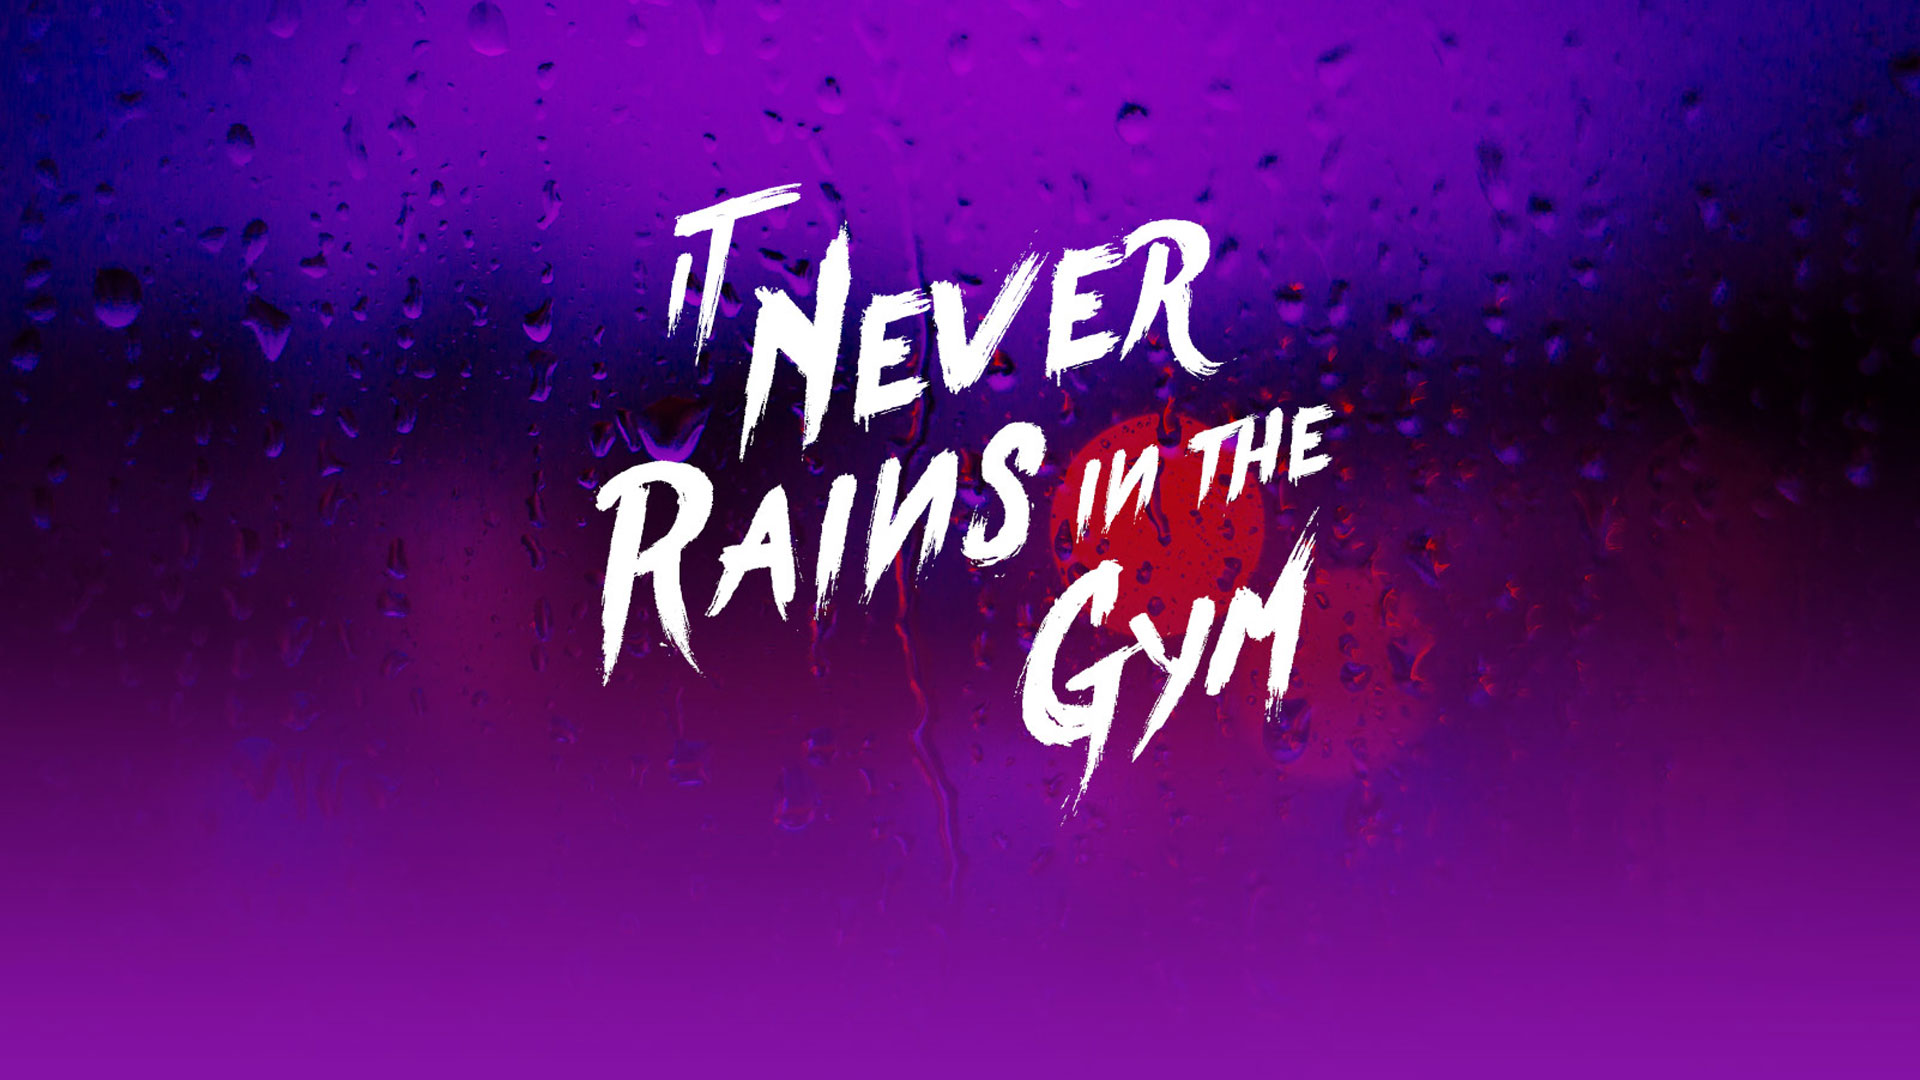 it never rains in the gym wexford kilkenny